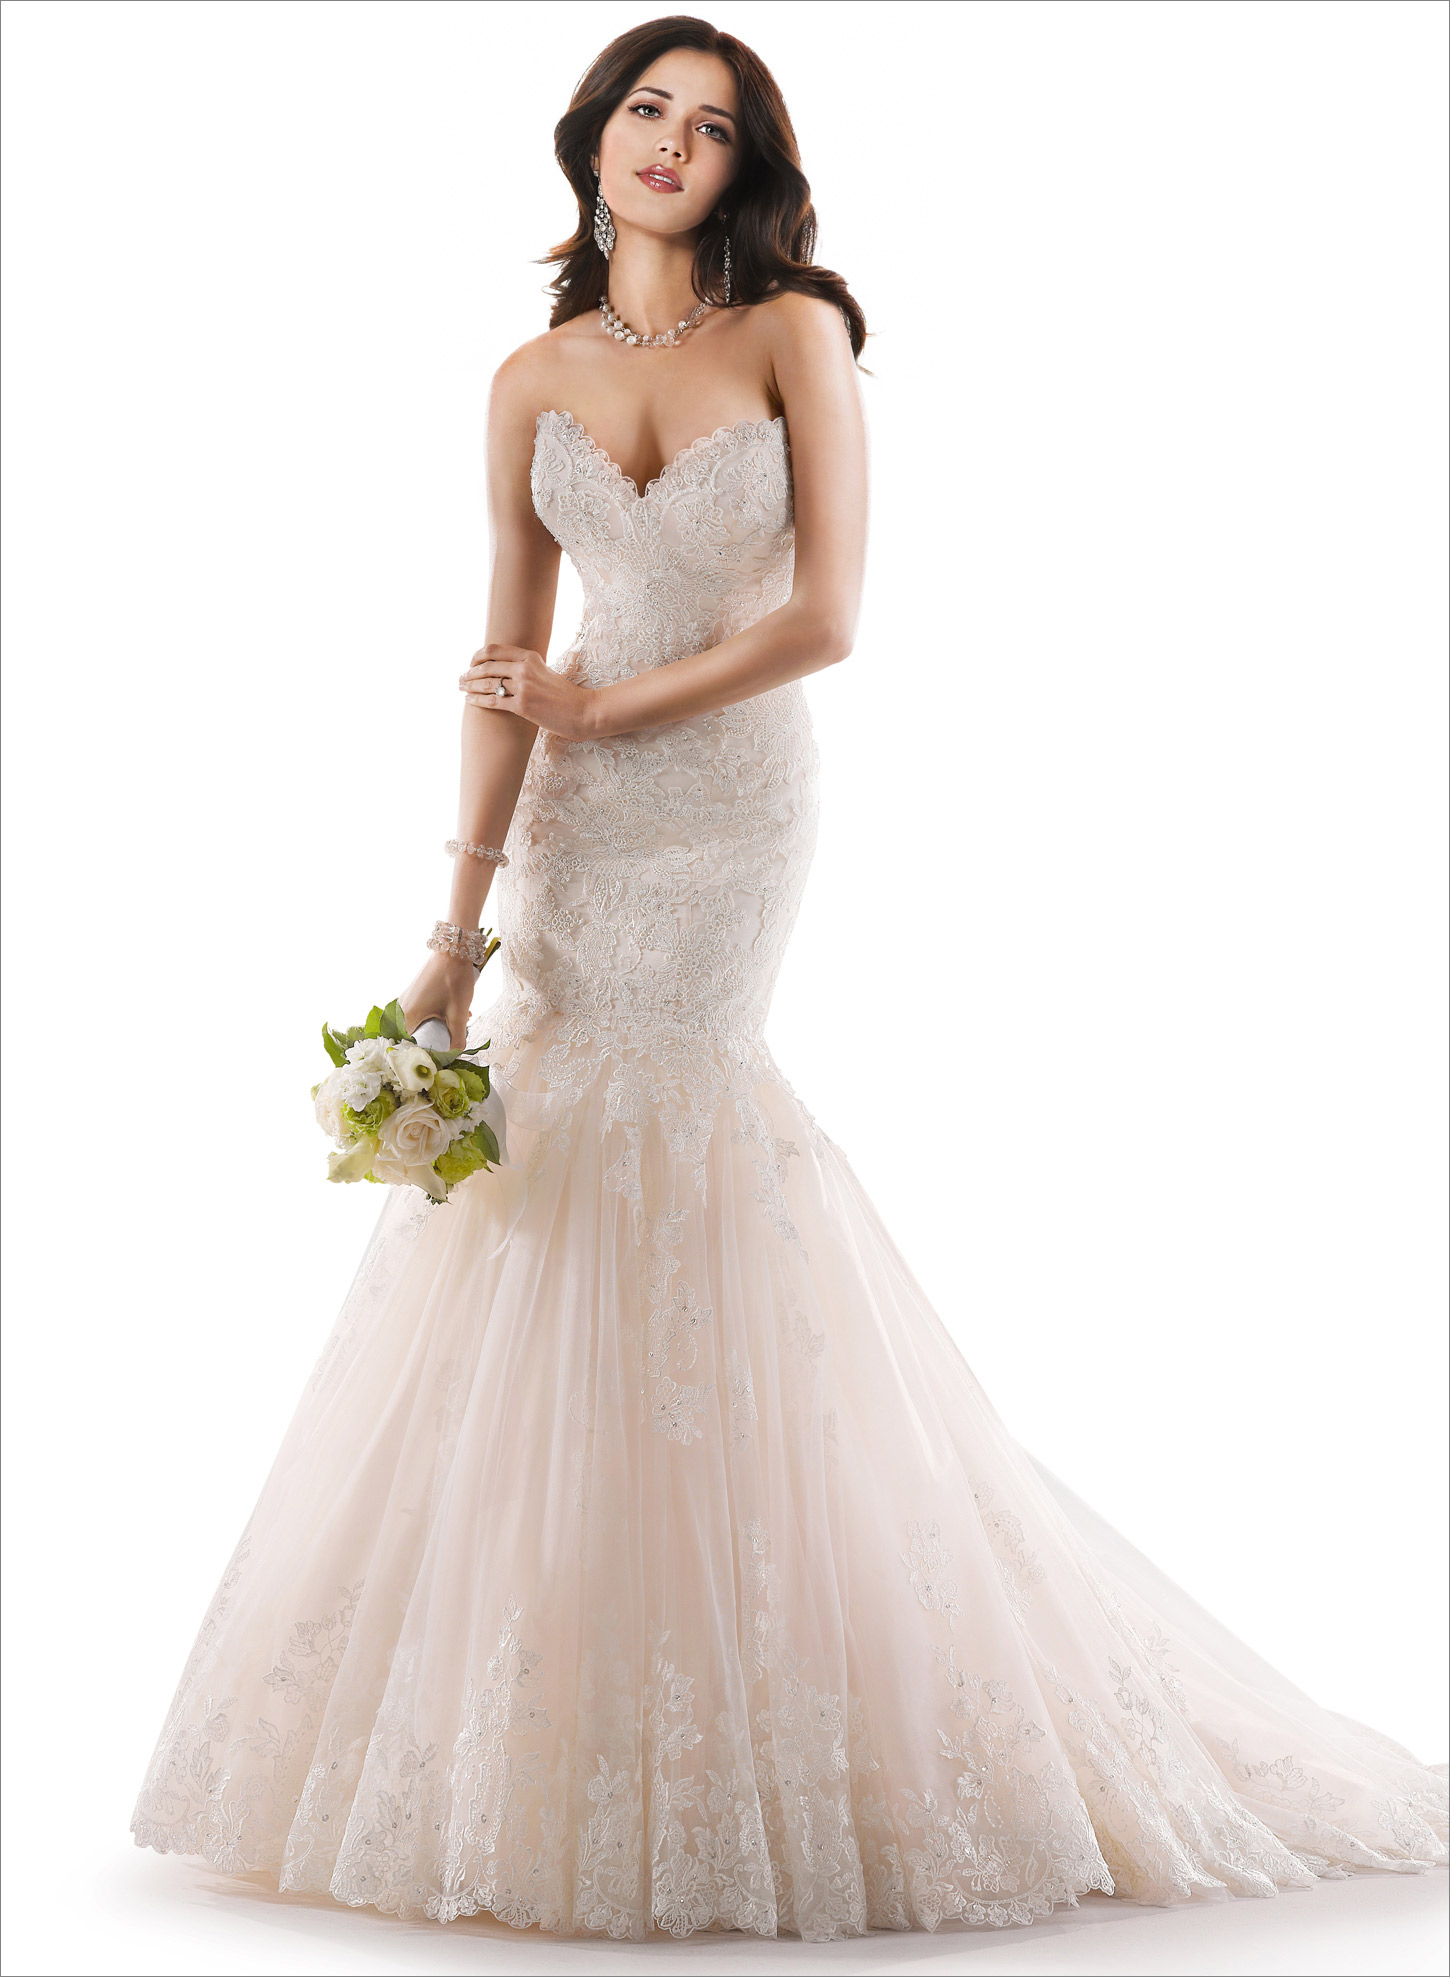 This Gorgeous Maggie Sottero Inspiration Will Make You Dream Of An